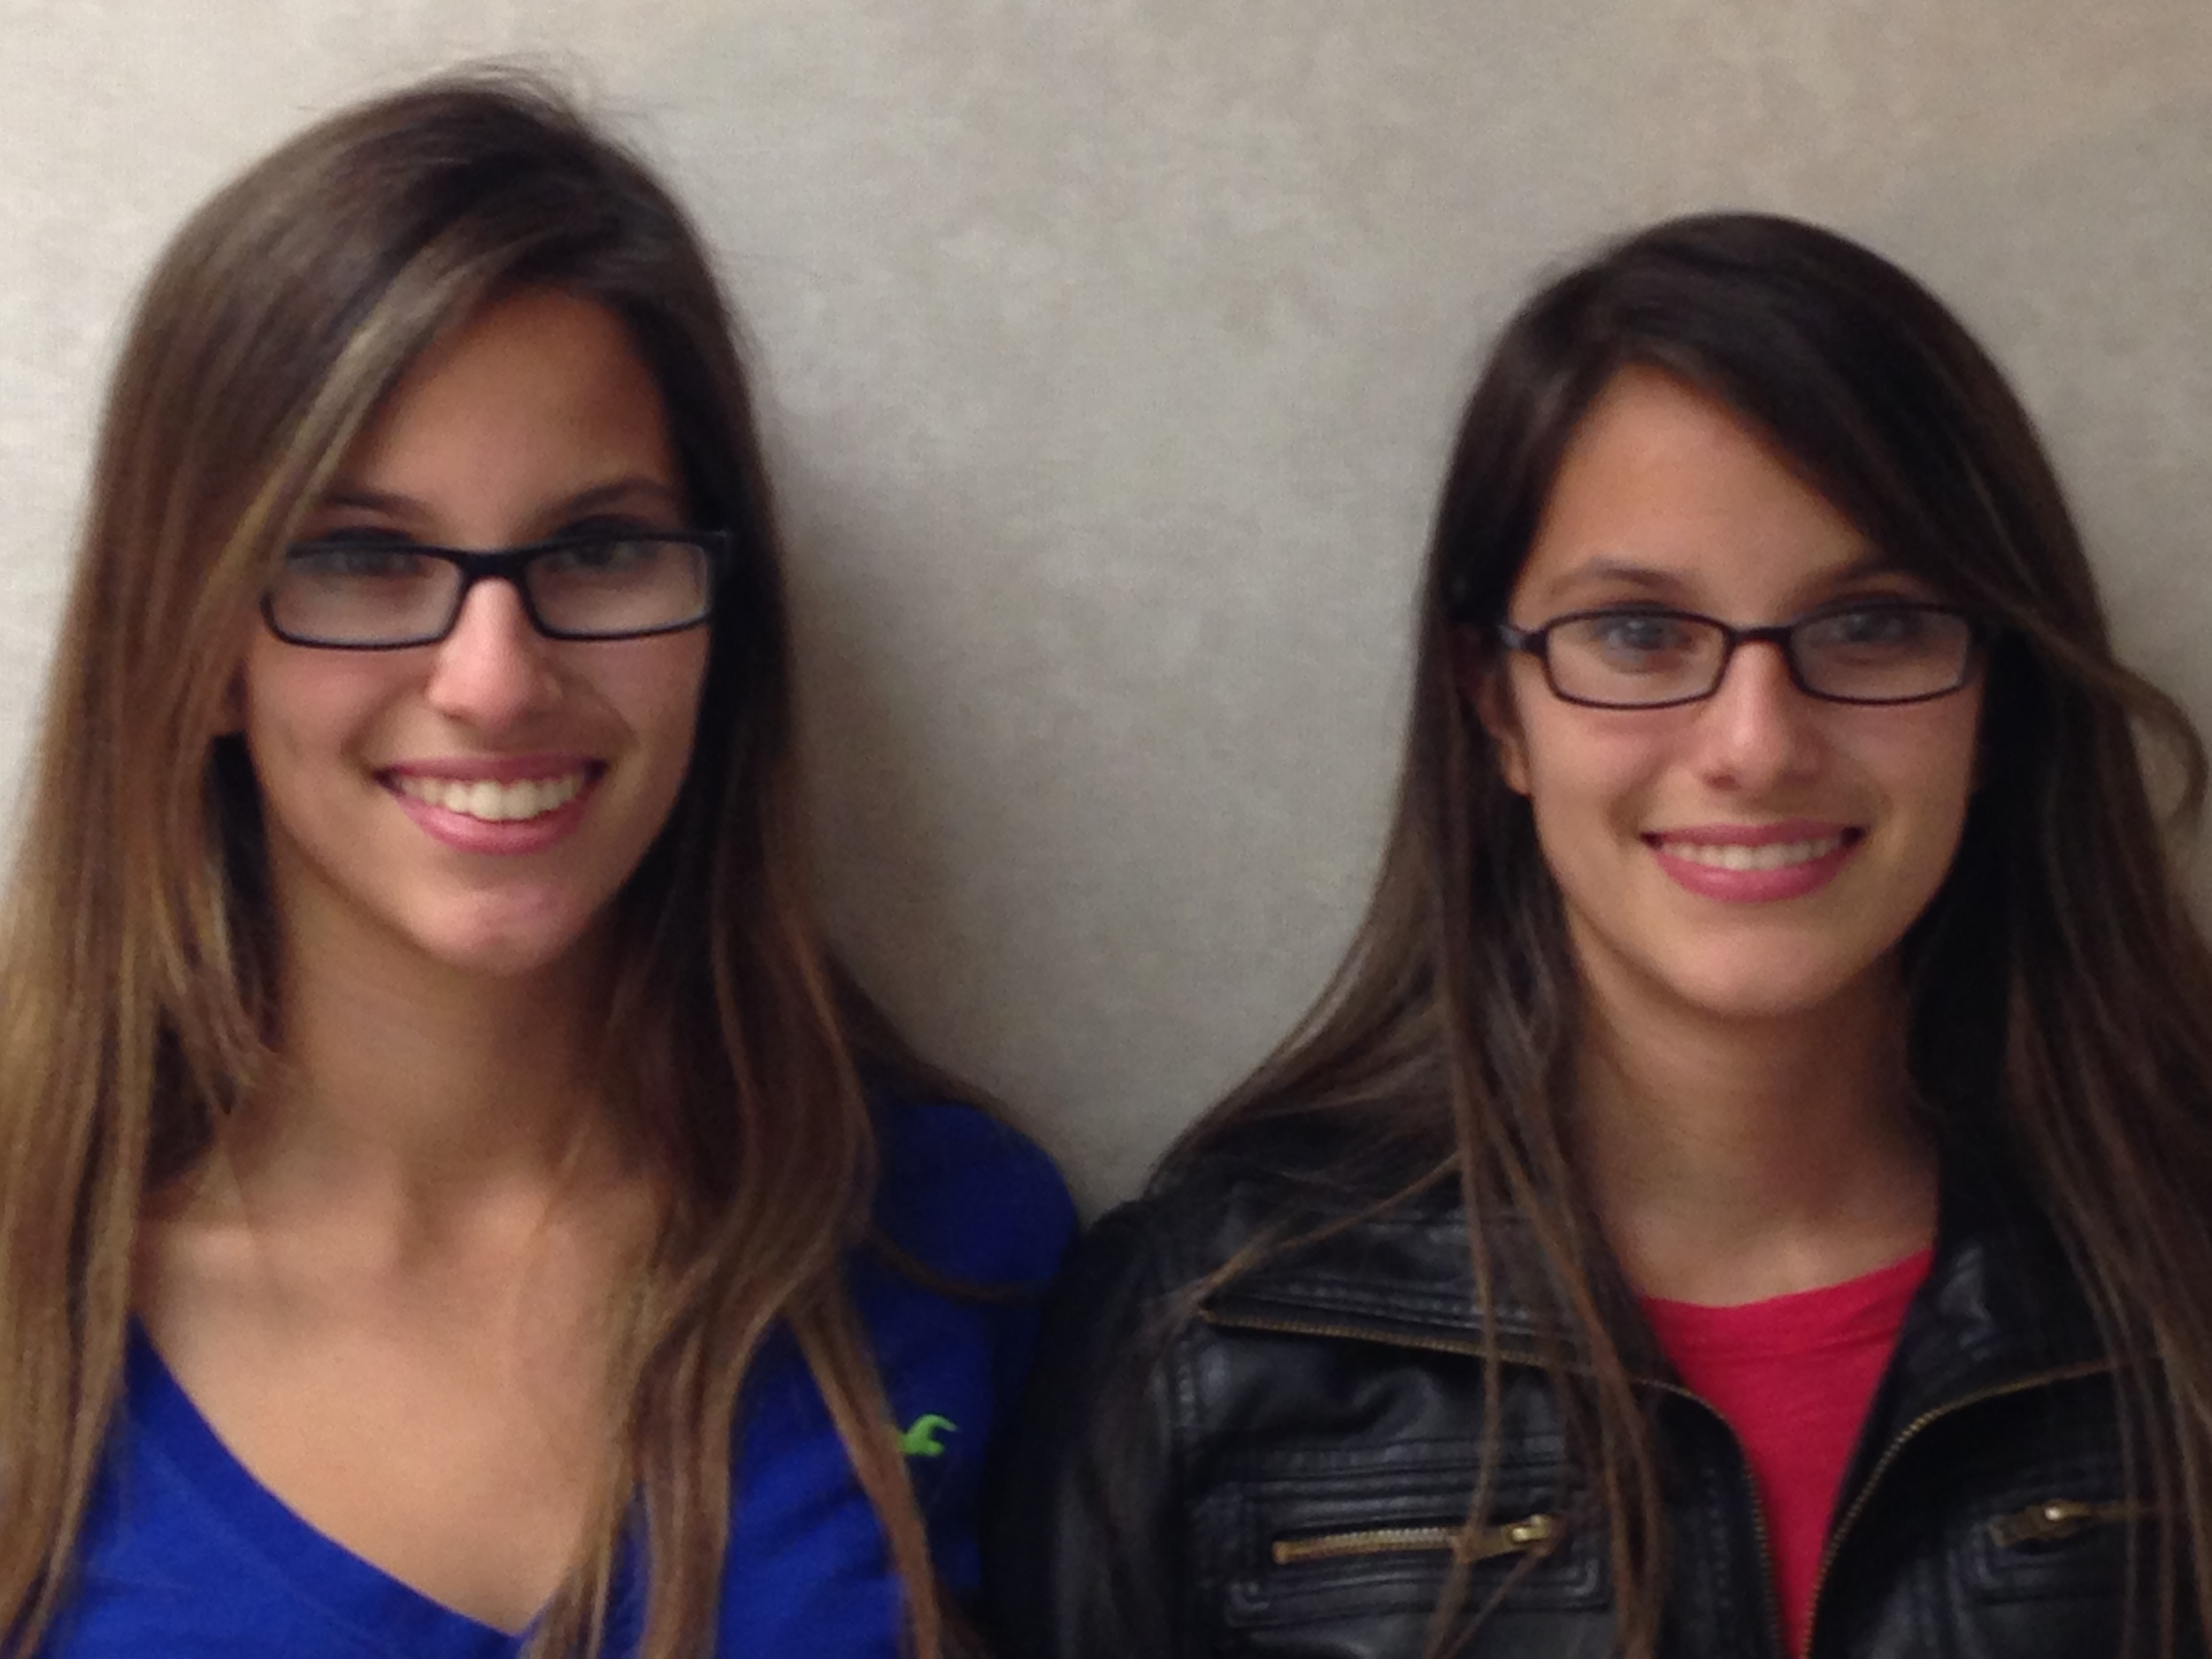 These sisters are smiling after having their braces removed at our Rockville Centre office. They are now in their retention phase of treatment.